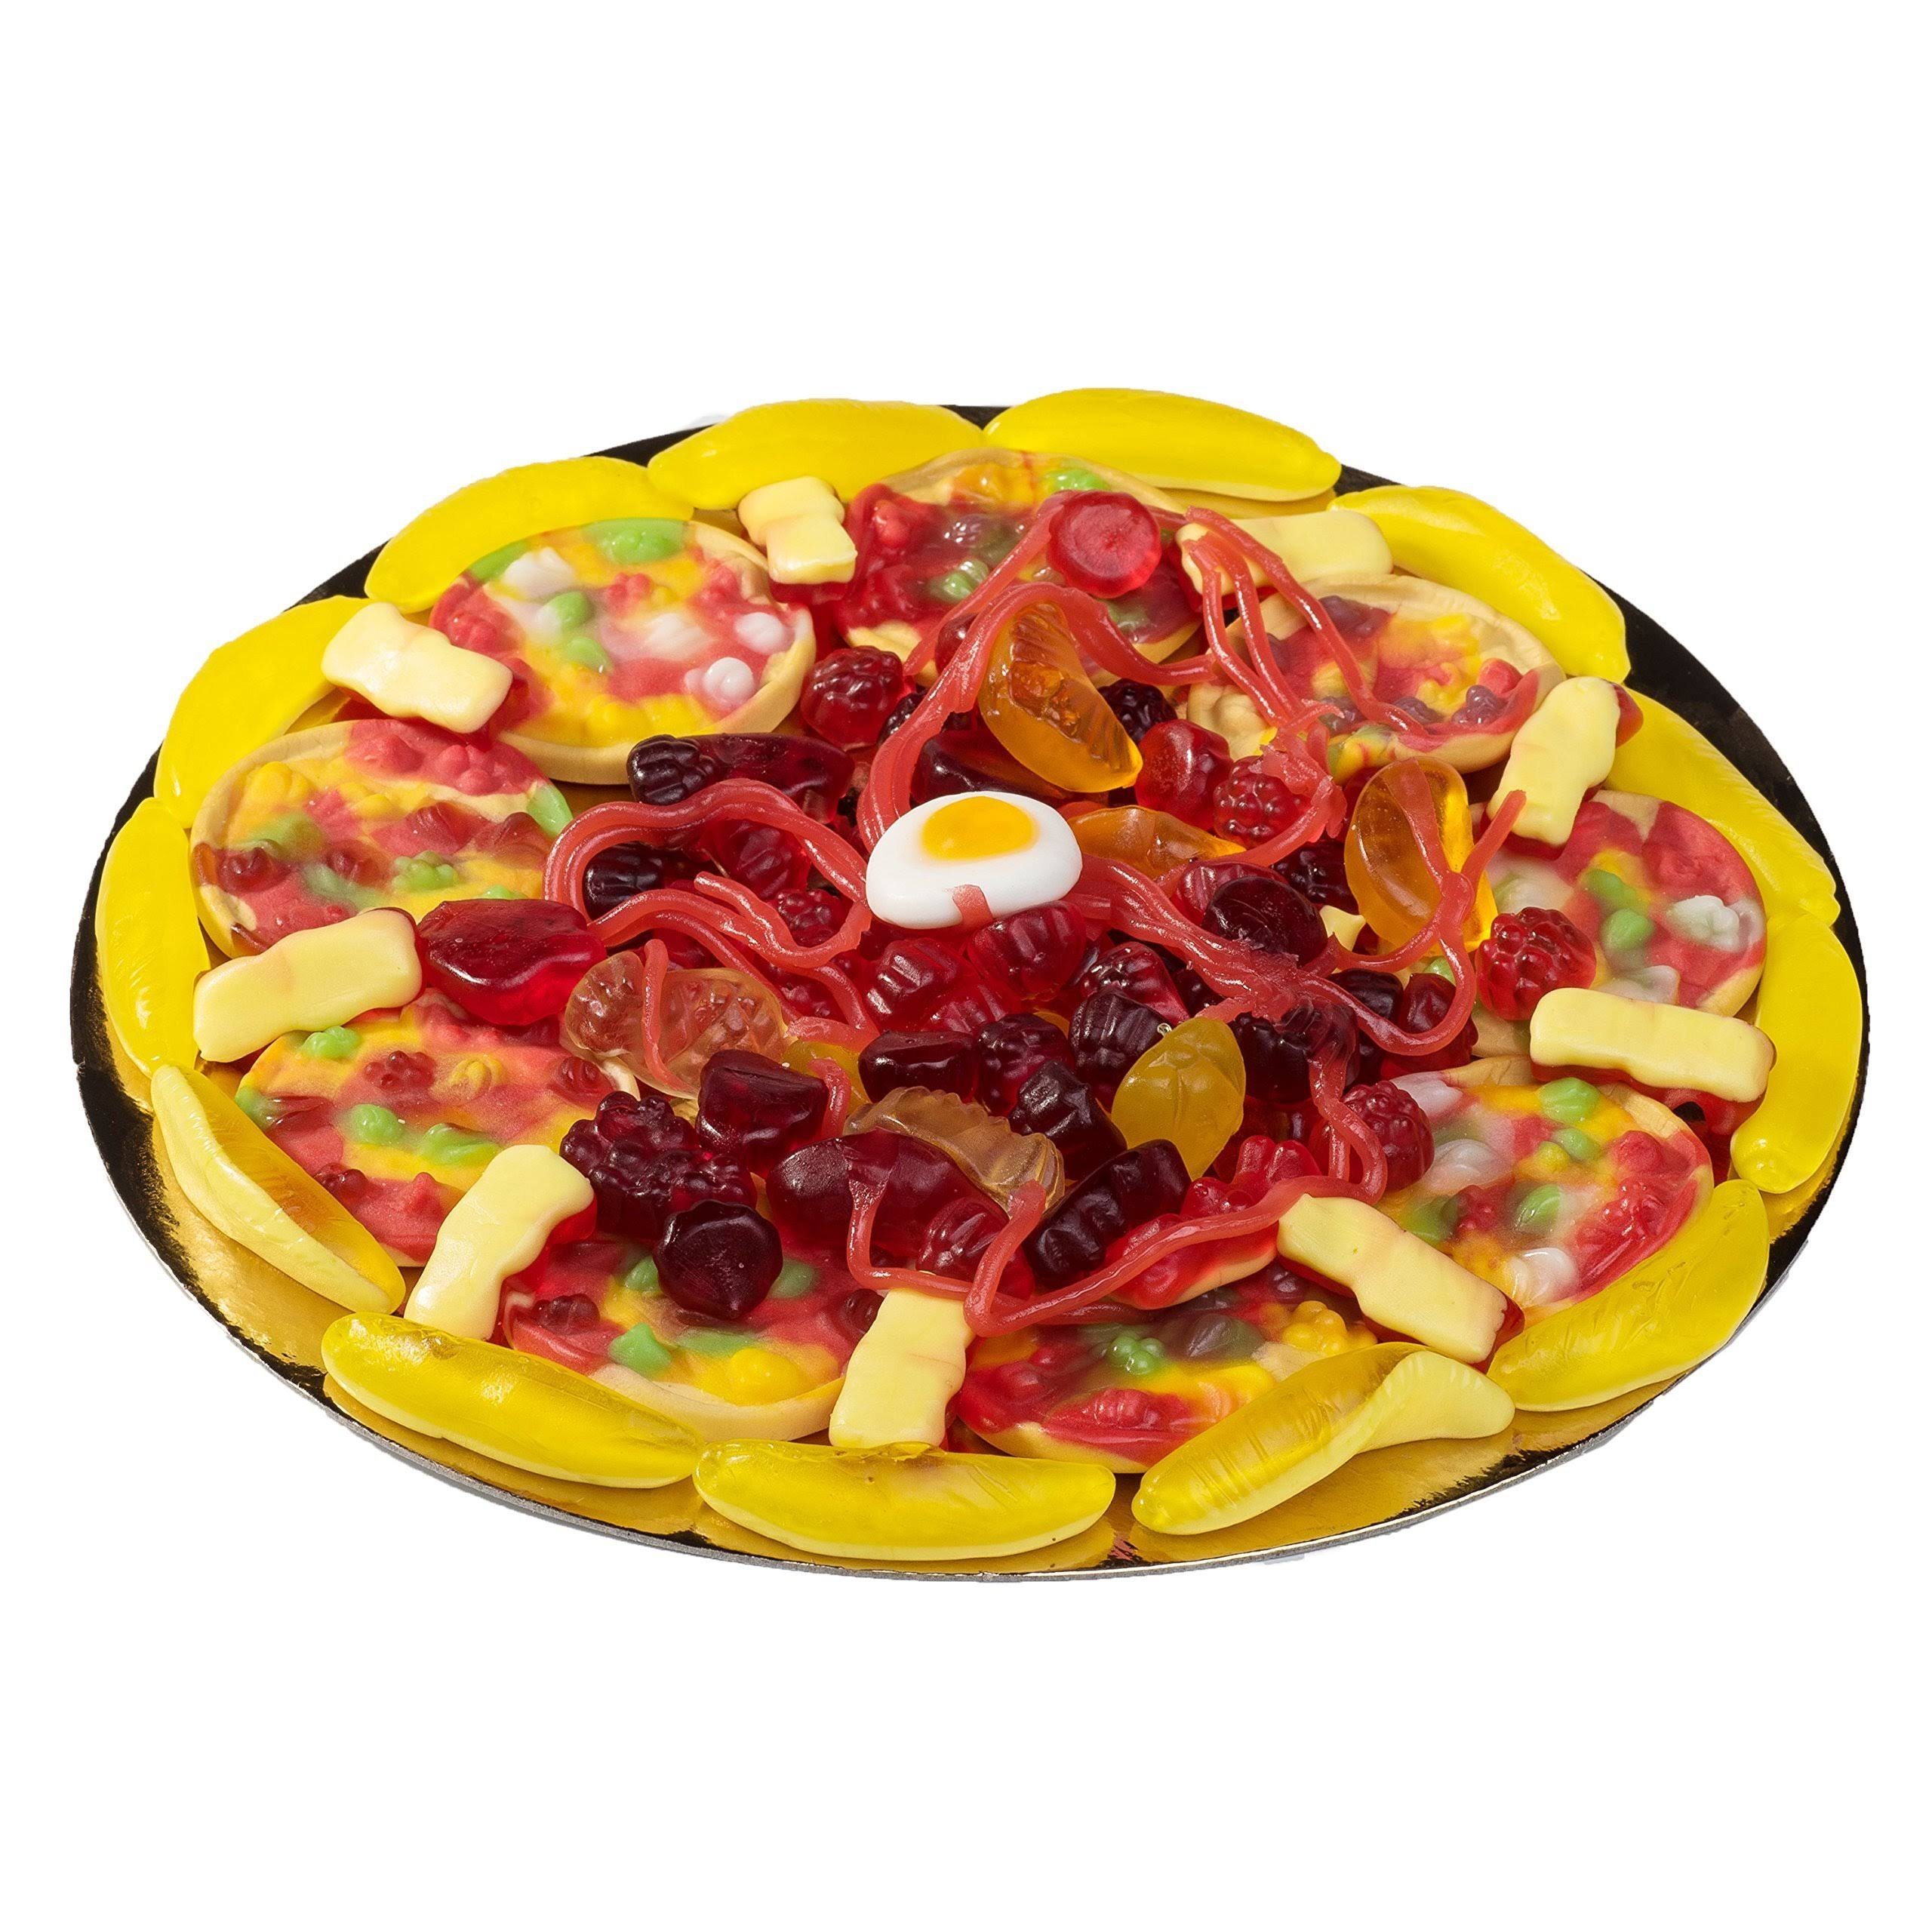 Raindrops Candy Pizza - 435g